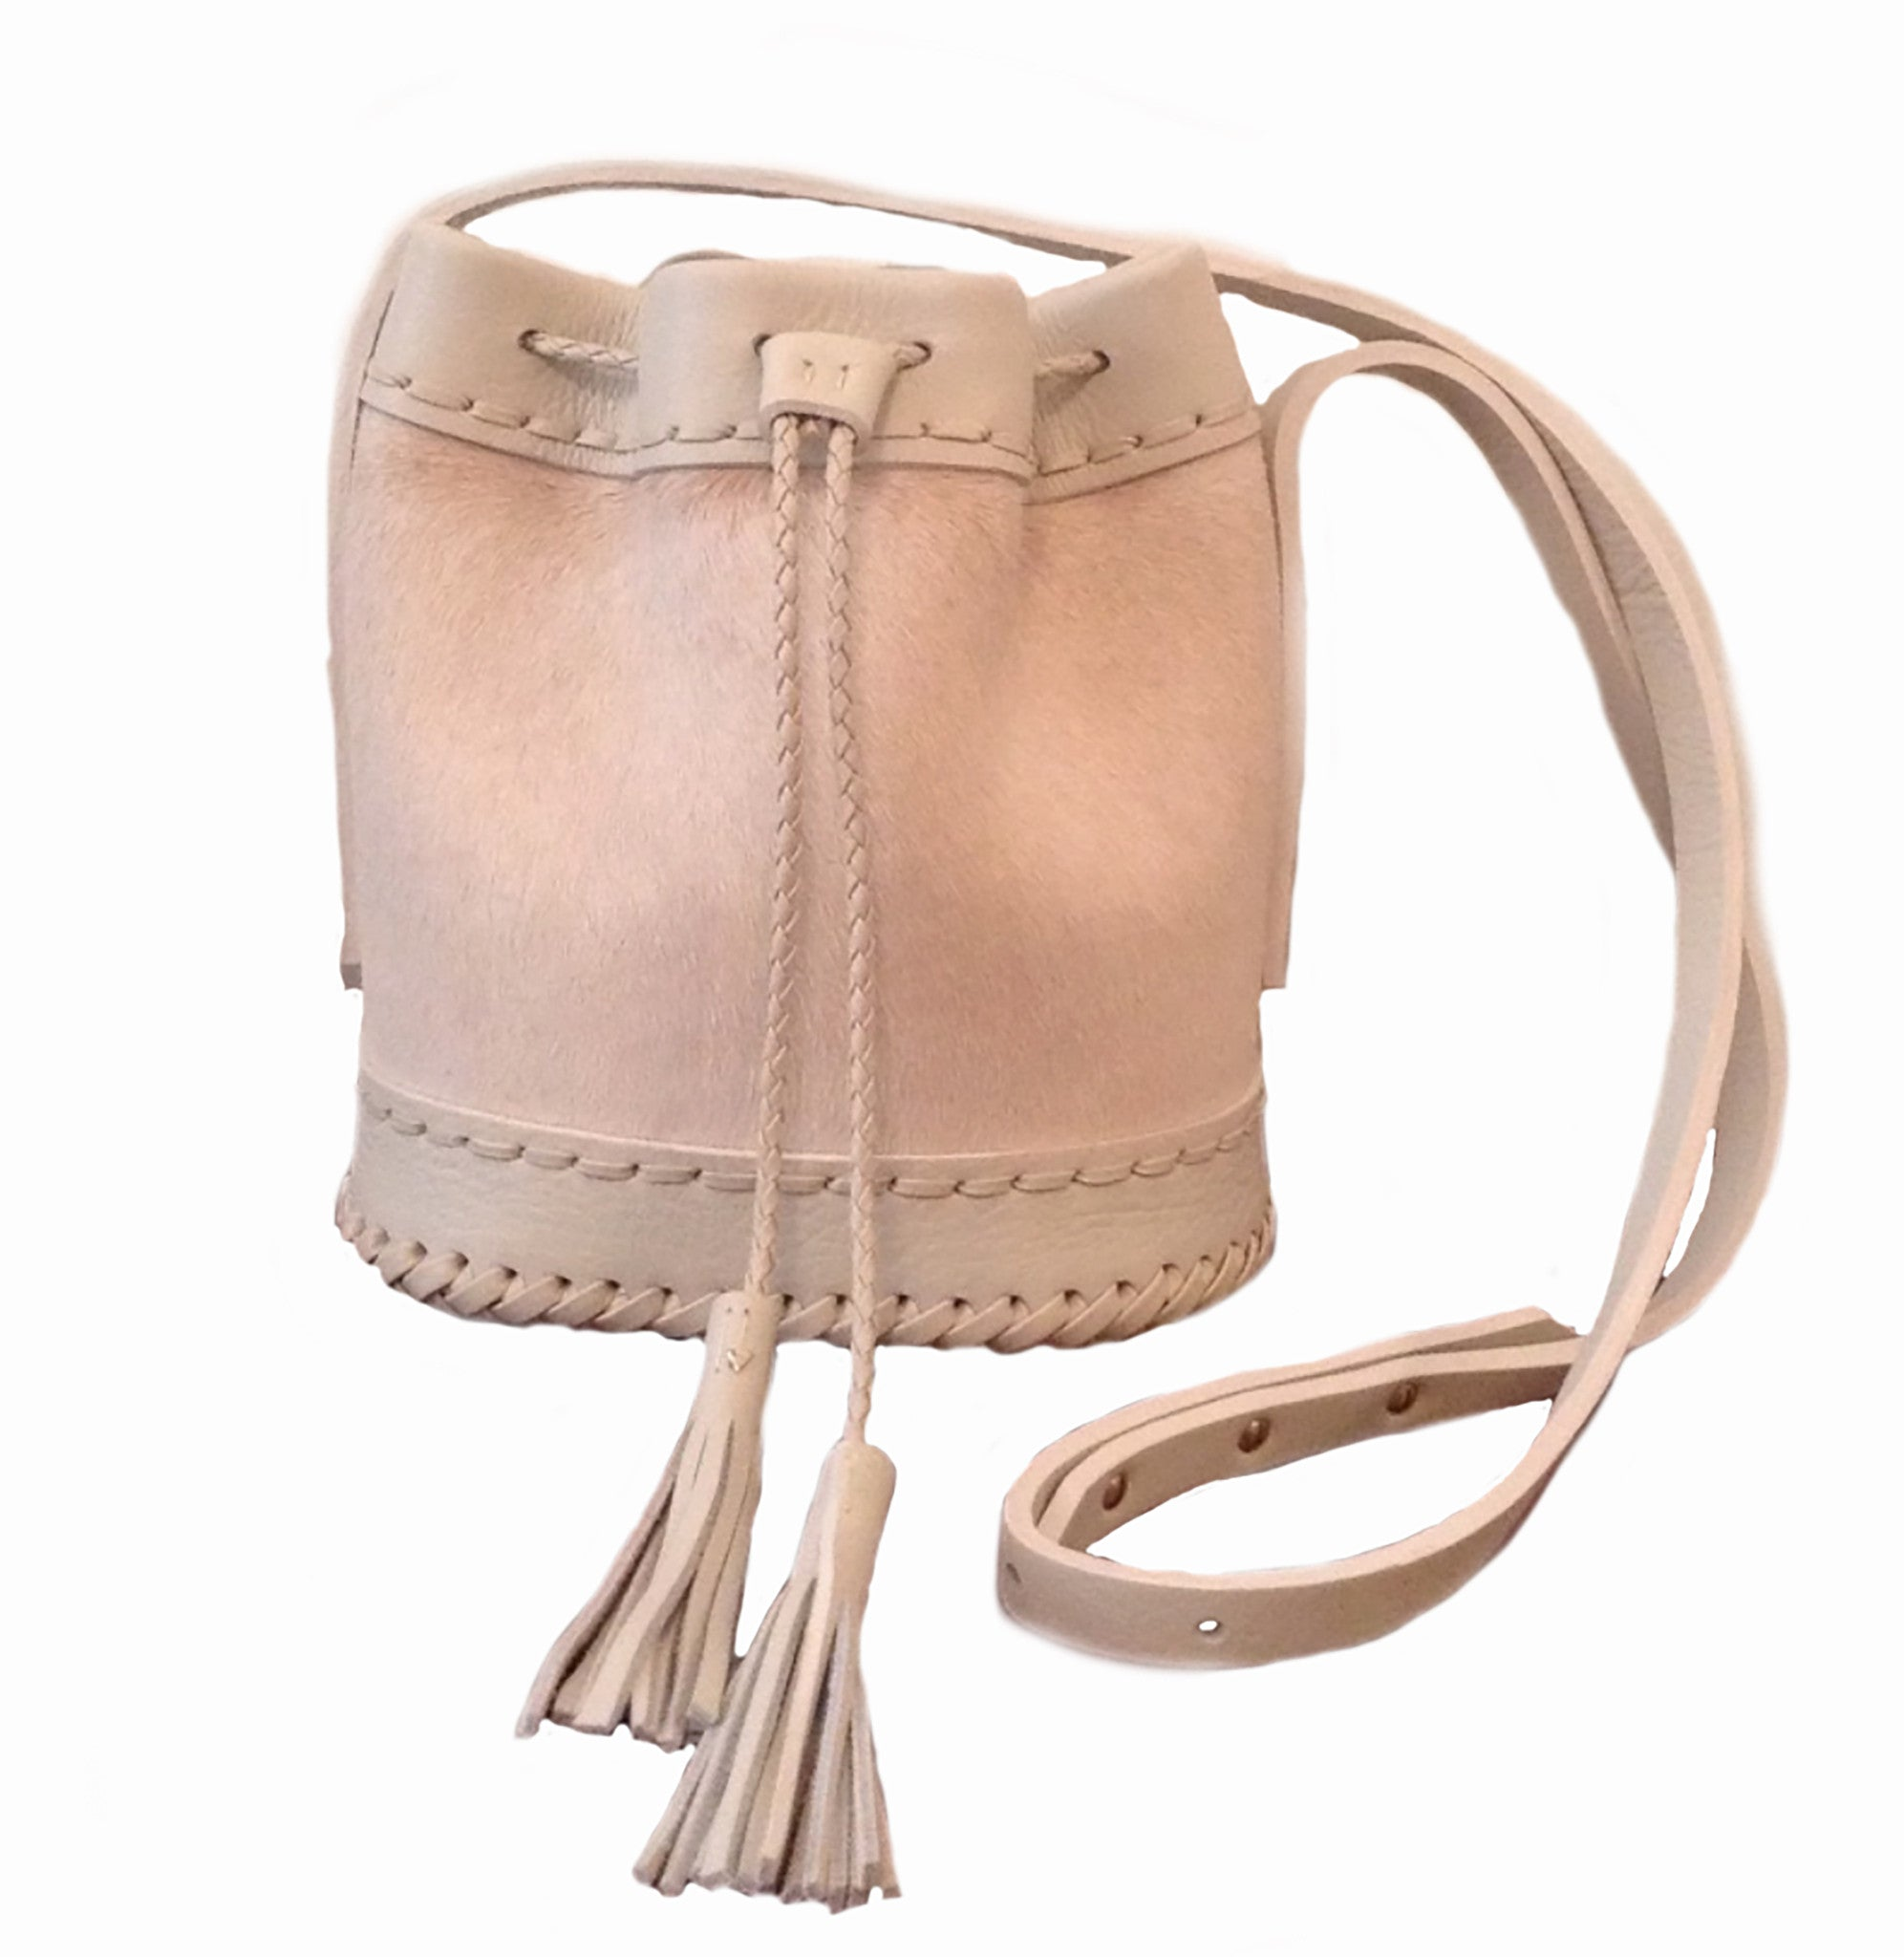 Summer Blush light Pink Cream Off White Leather cowhide Pony Cow Fur Small carriage Bag Wendy Nichol Luxury Handbag purse Designer handmade in NYC New York City bucket Drawstring Draw String Pouch Small fringe tassel Mini cross body adjustable durable strap High Quality Leather